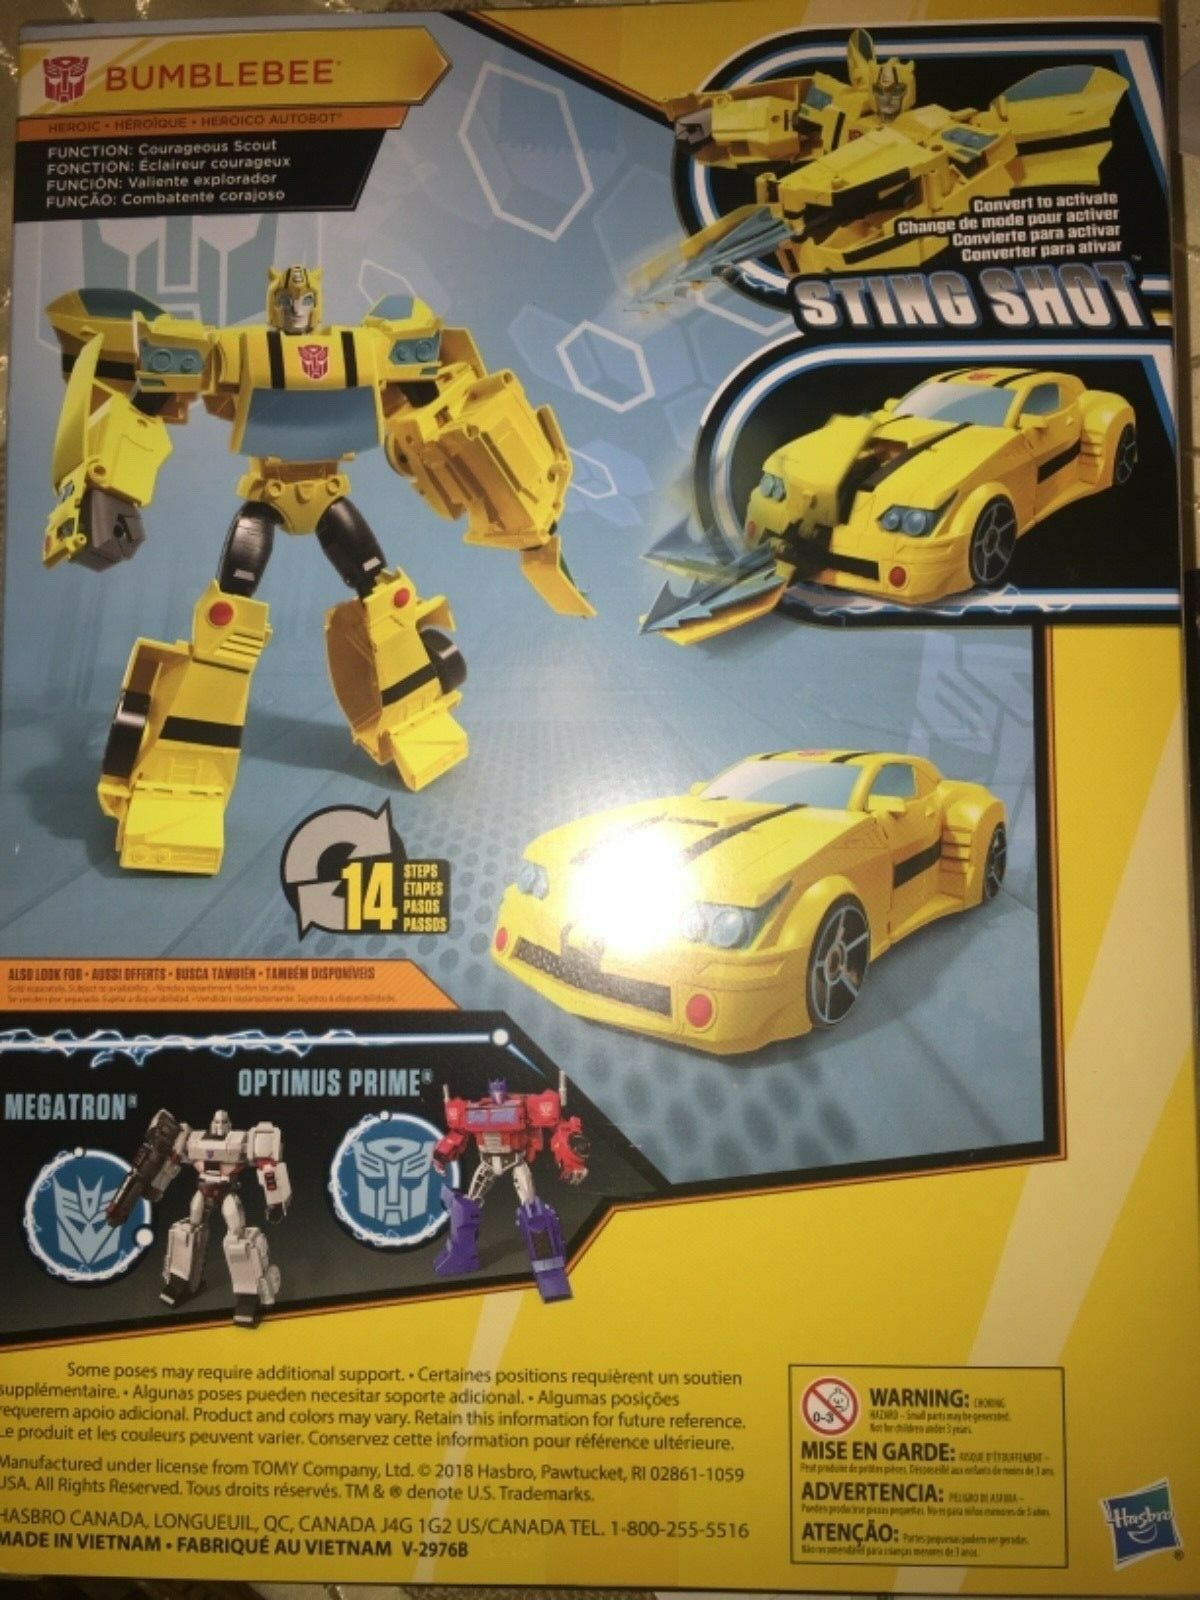 New Transformers Cyberverse Bumblebee Sting Shot 10 inches tall